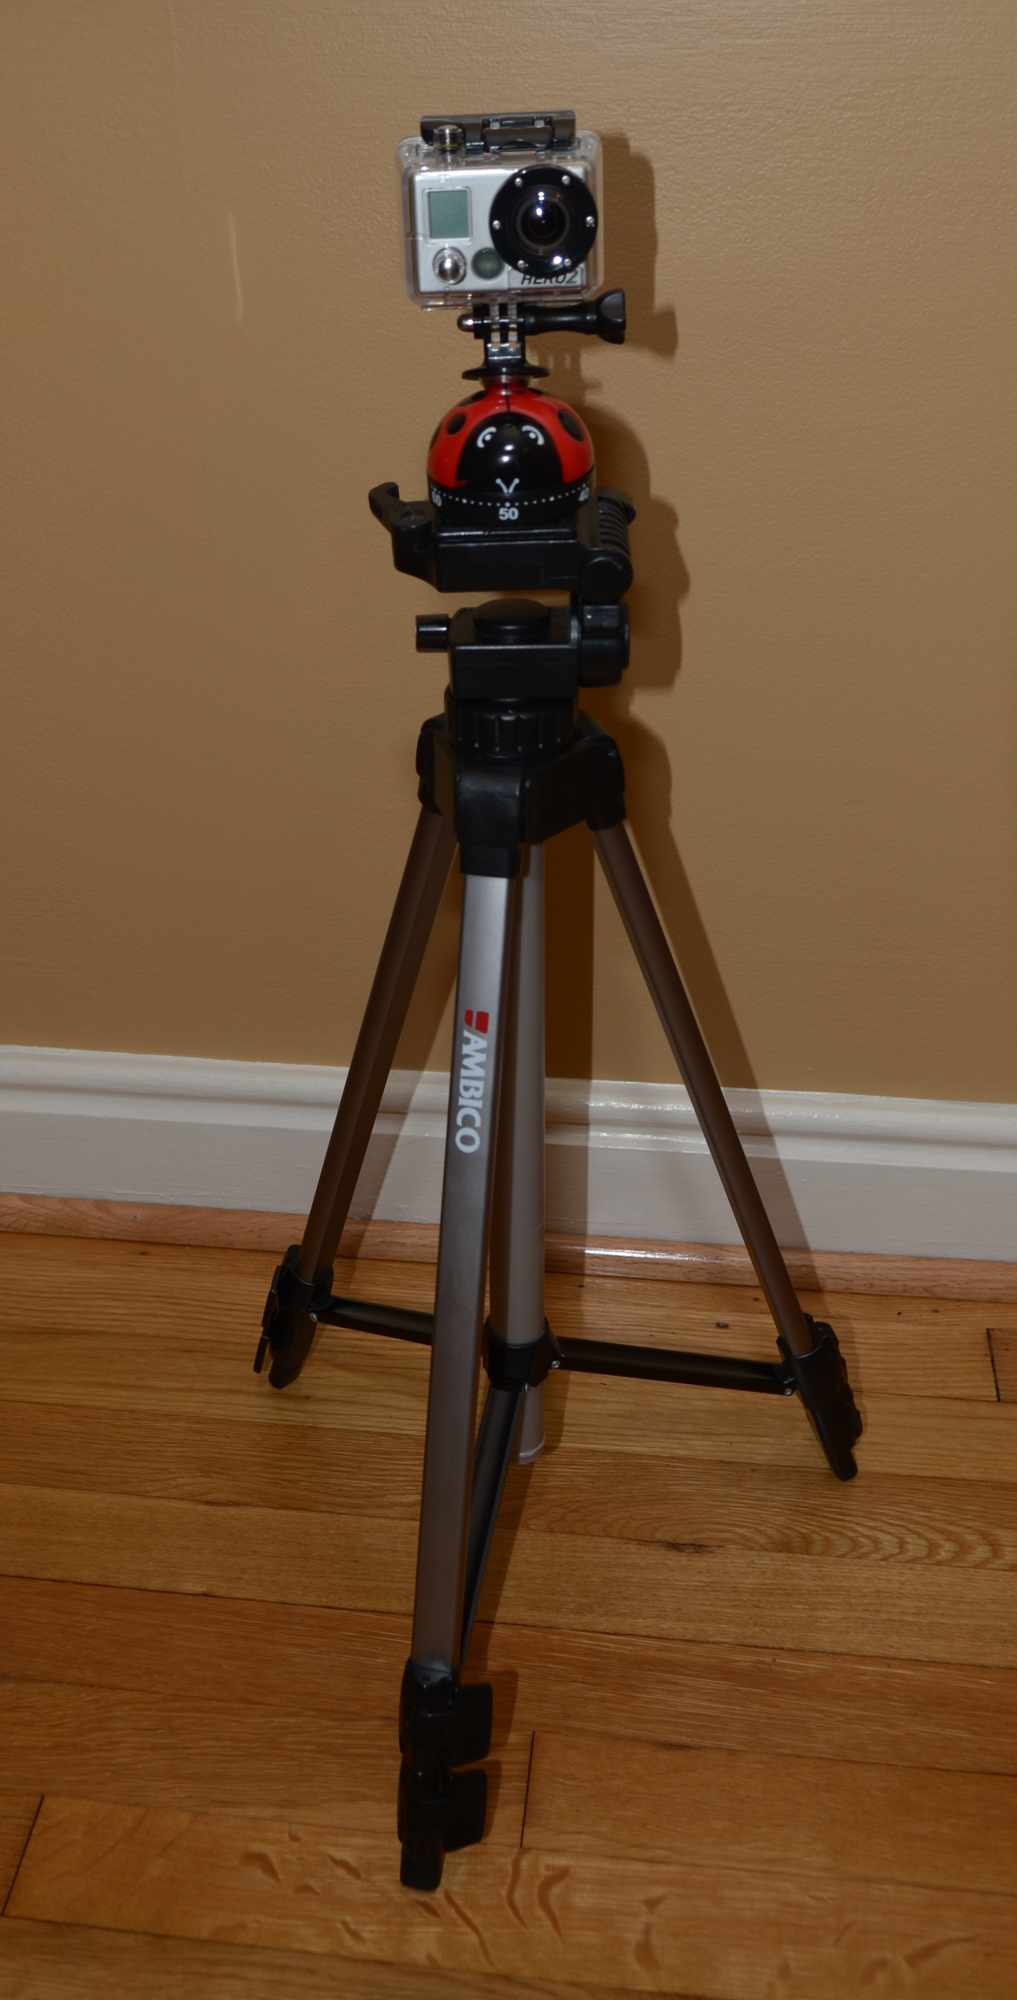 GoPro timer on tripod